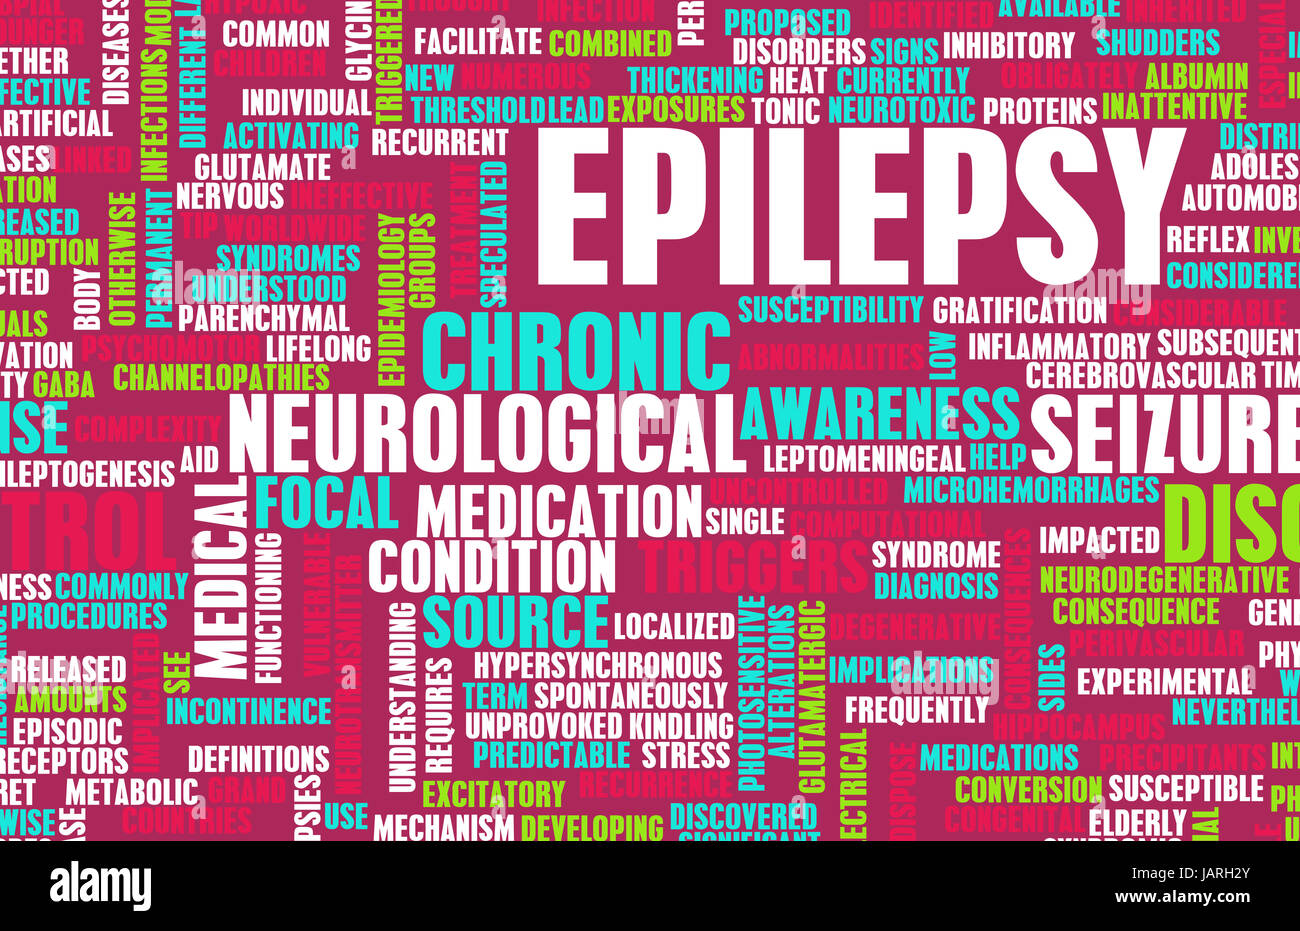 Epileptic BrainStock Photos and Images